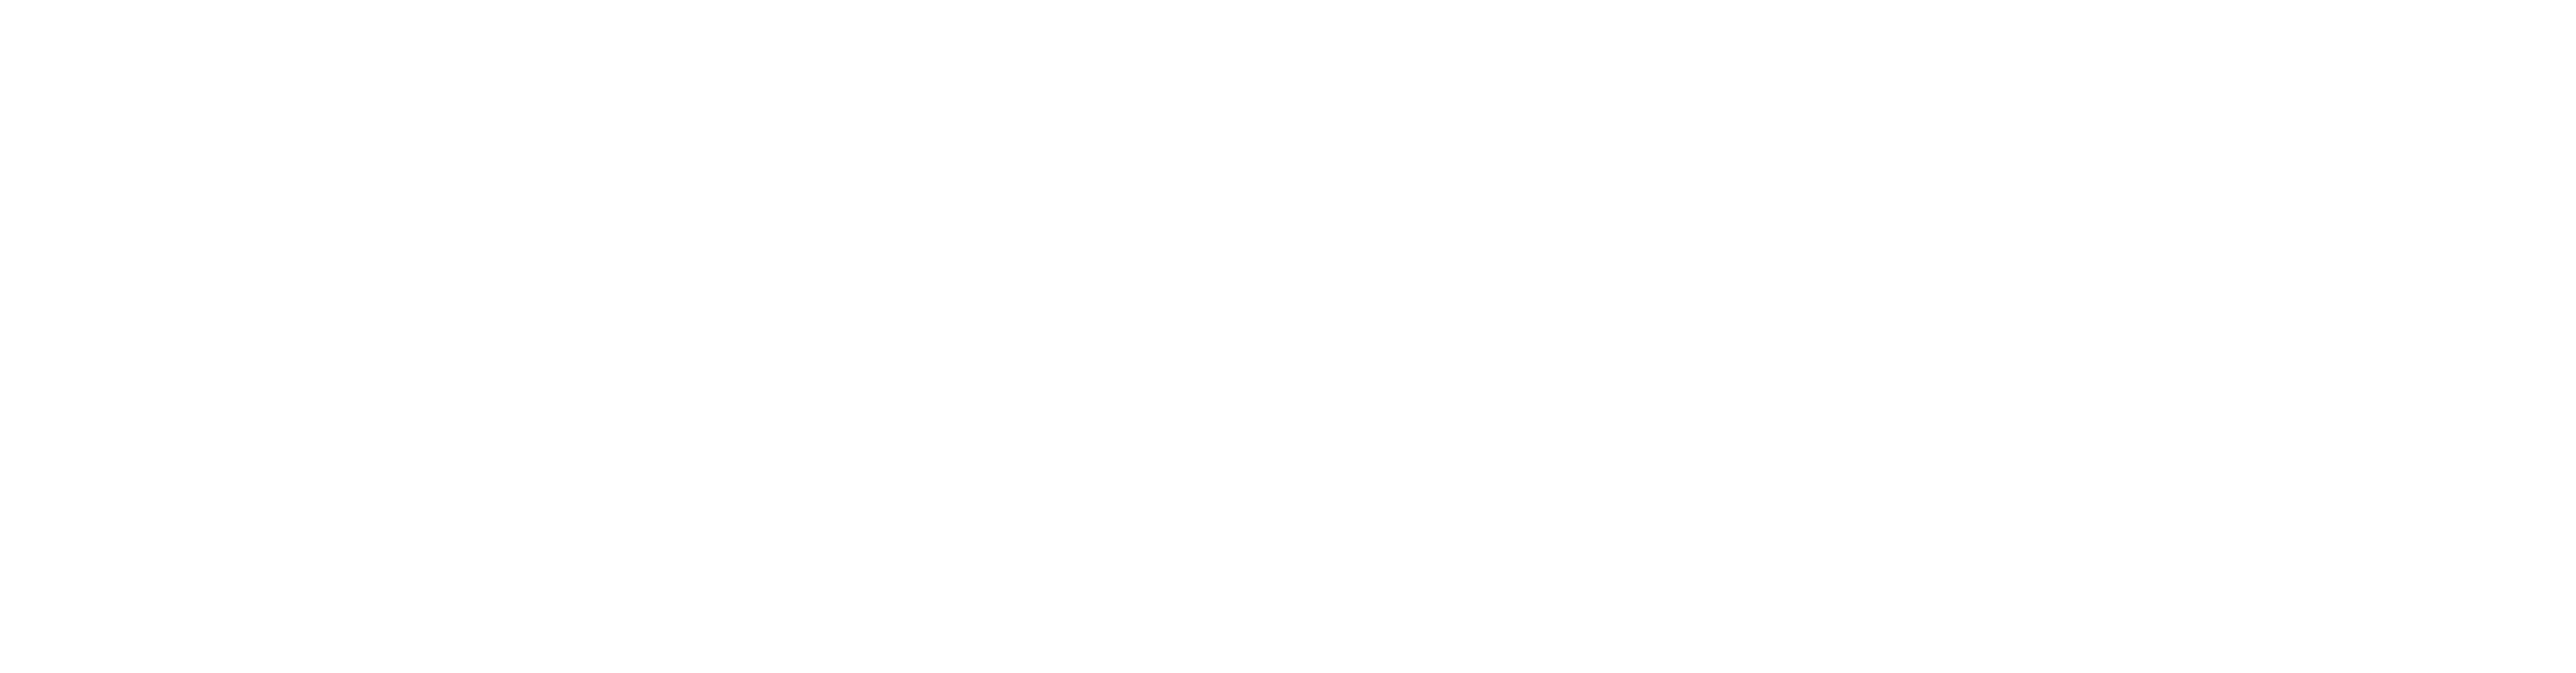 Stars decor png clip. Photography clipart photo album